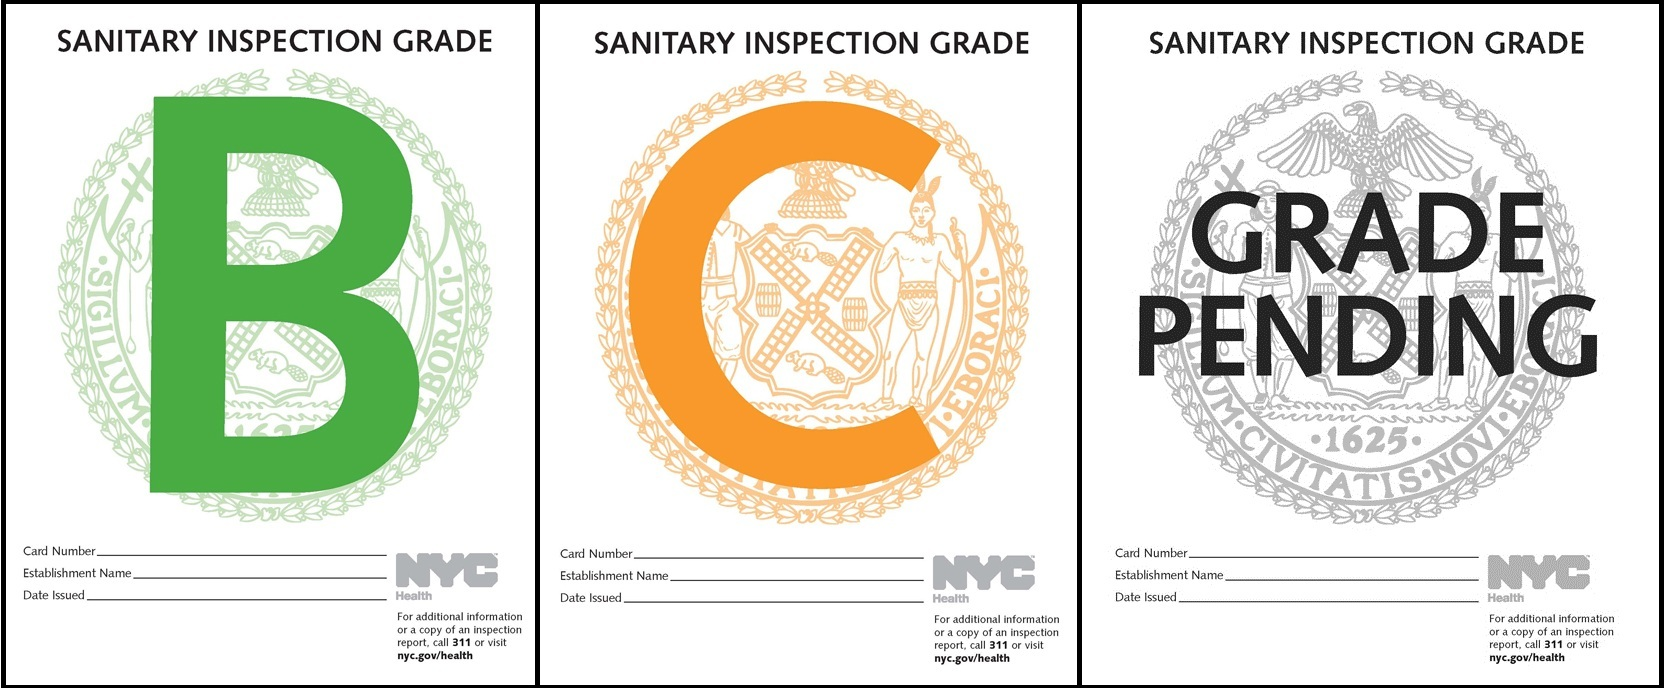 New York Food Safety Rating